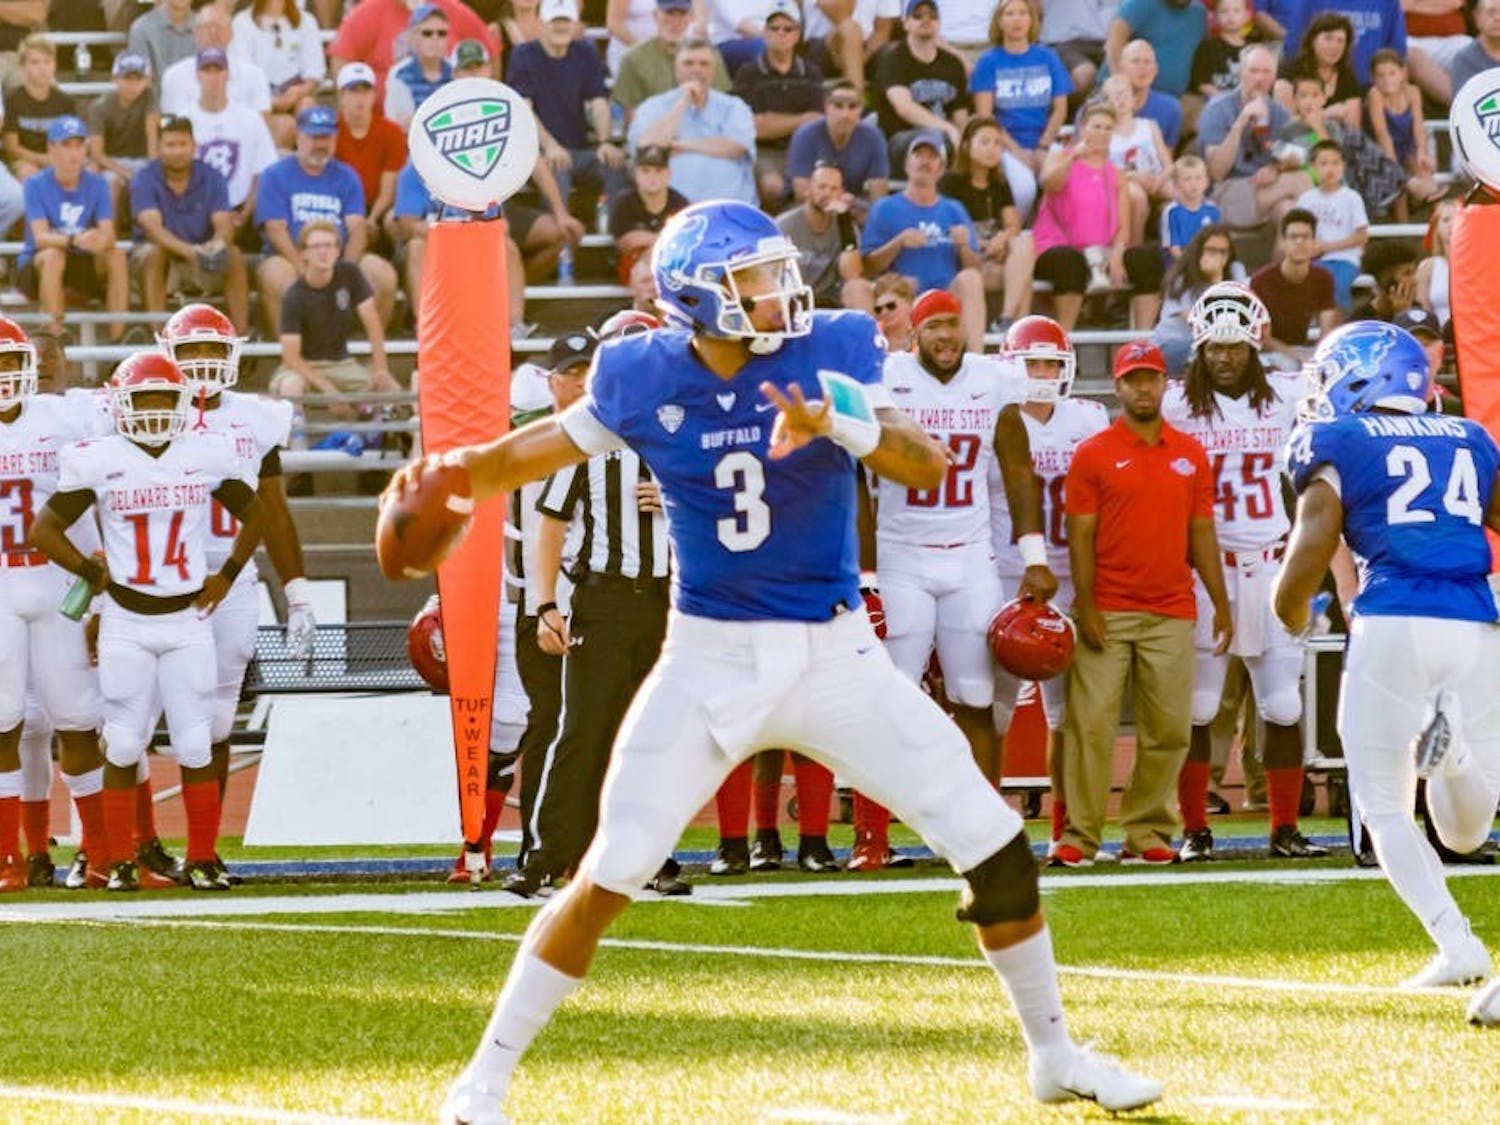 Former Bulls quarterback Tyree Jackson winds up for a throw last season. Jackson is now fighting for a spot on the Buffalo Bills roster.